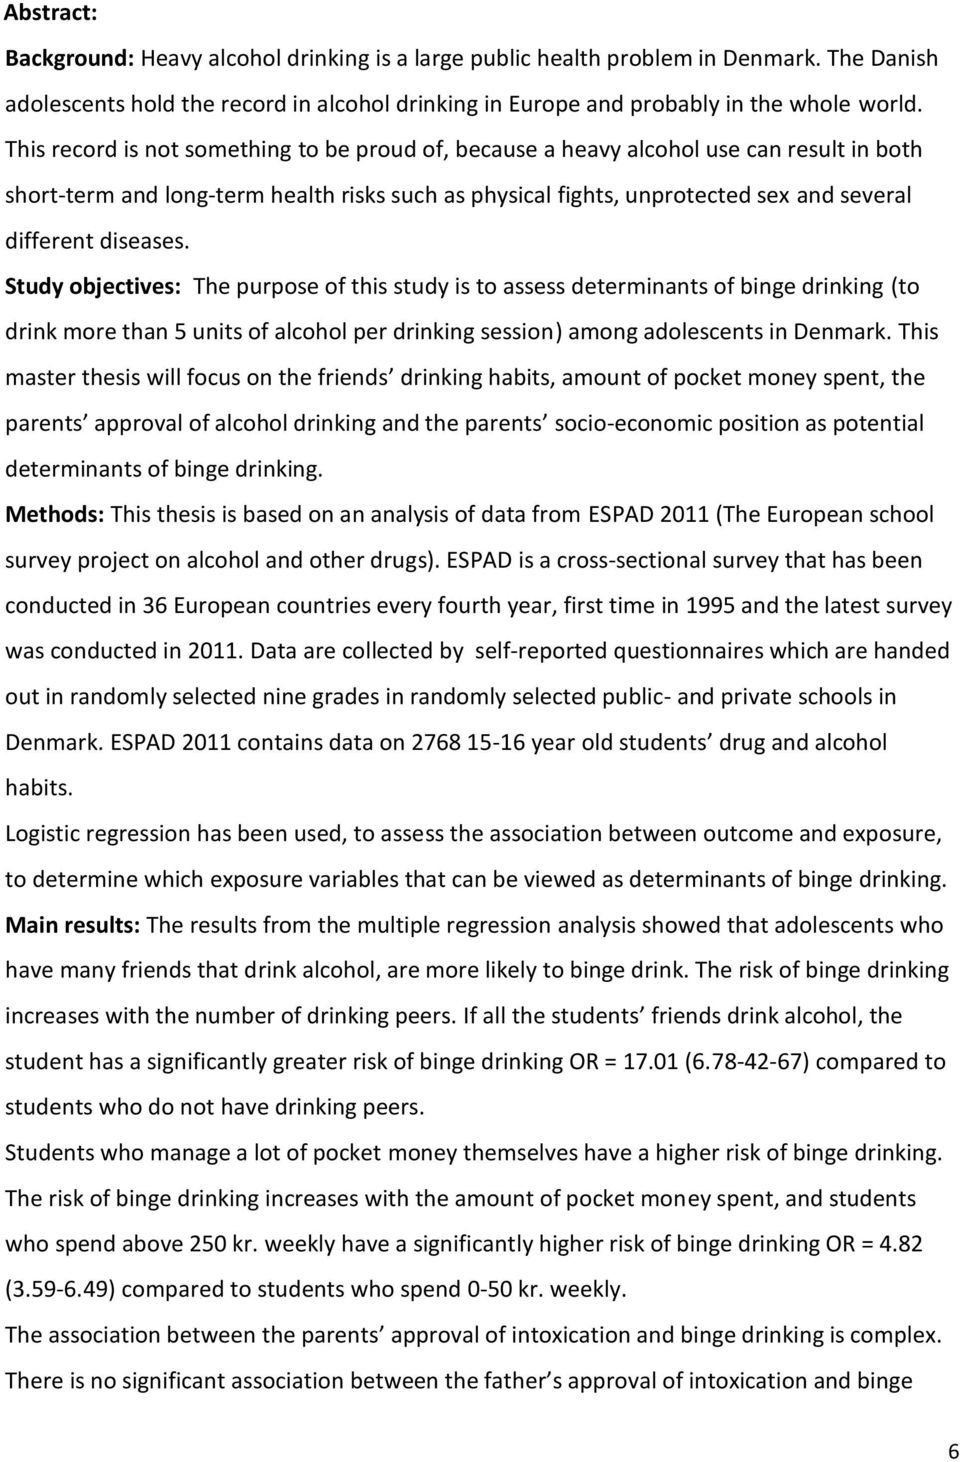 diseases. Study objectives: The purpose of this study is to assess determinants of binge drinking (to drink more than 5 units of alcohol per drinking session) among adolescents in Denmark.